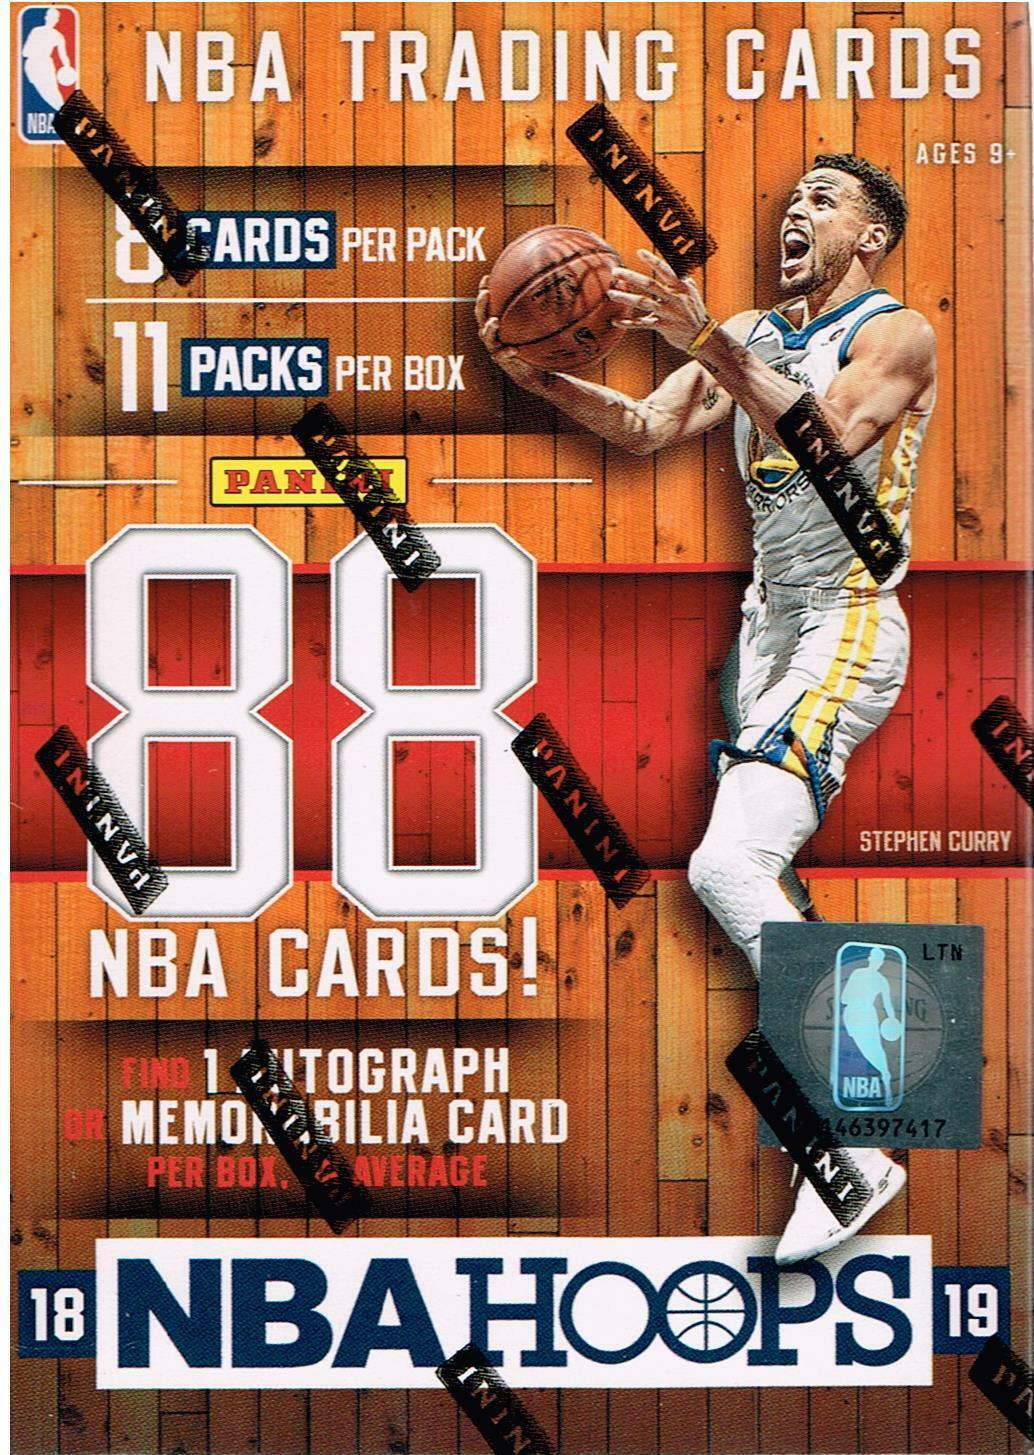 2018-19 Panini HOOPS Basketball NBA Trading Cards 88ct BLASTER Box=1 Auto/Mem OA